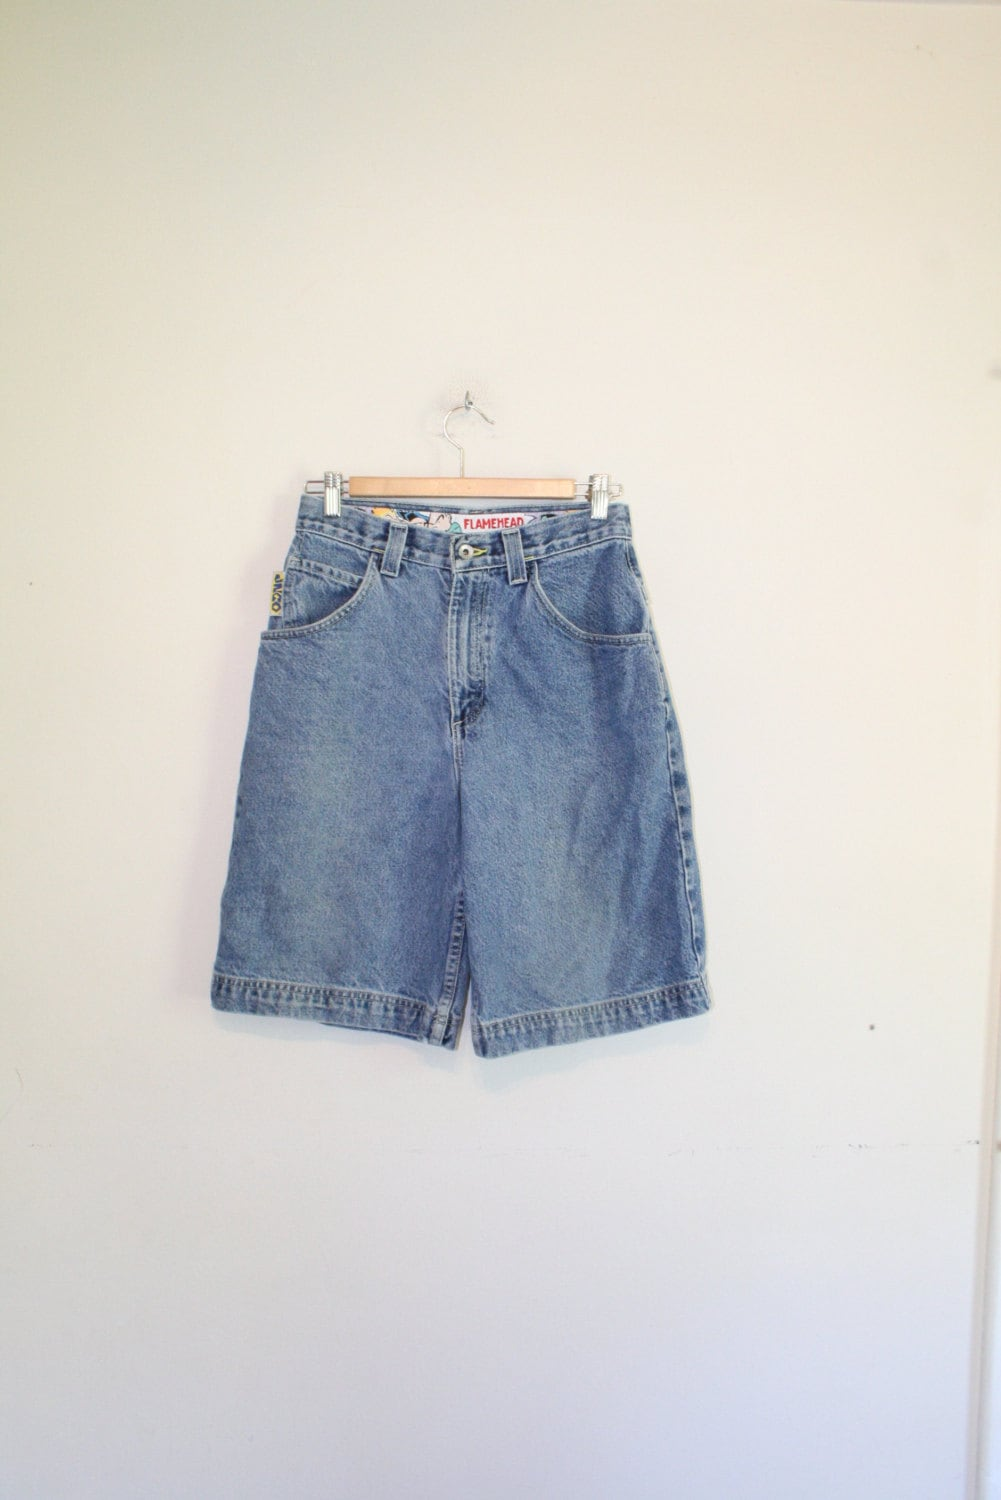 JNCO JEAN SHORTS // size small // 28 waist // 90s // by GUTTERSHOP